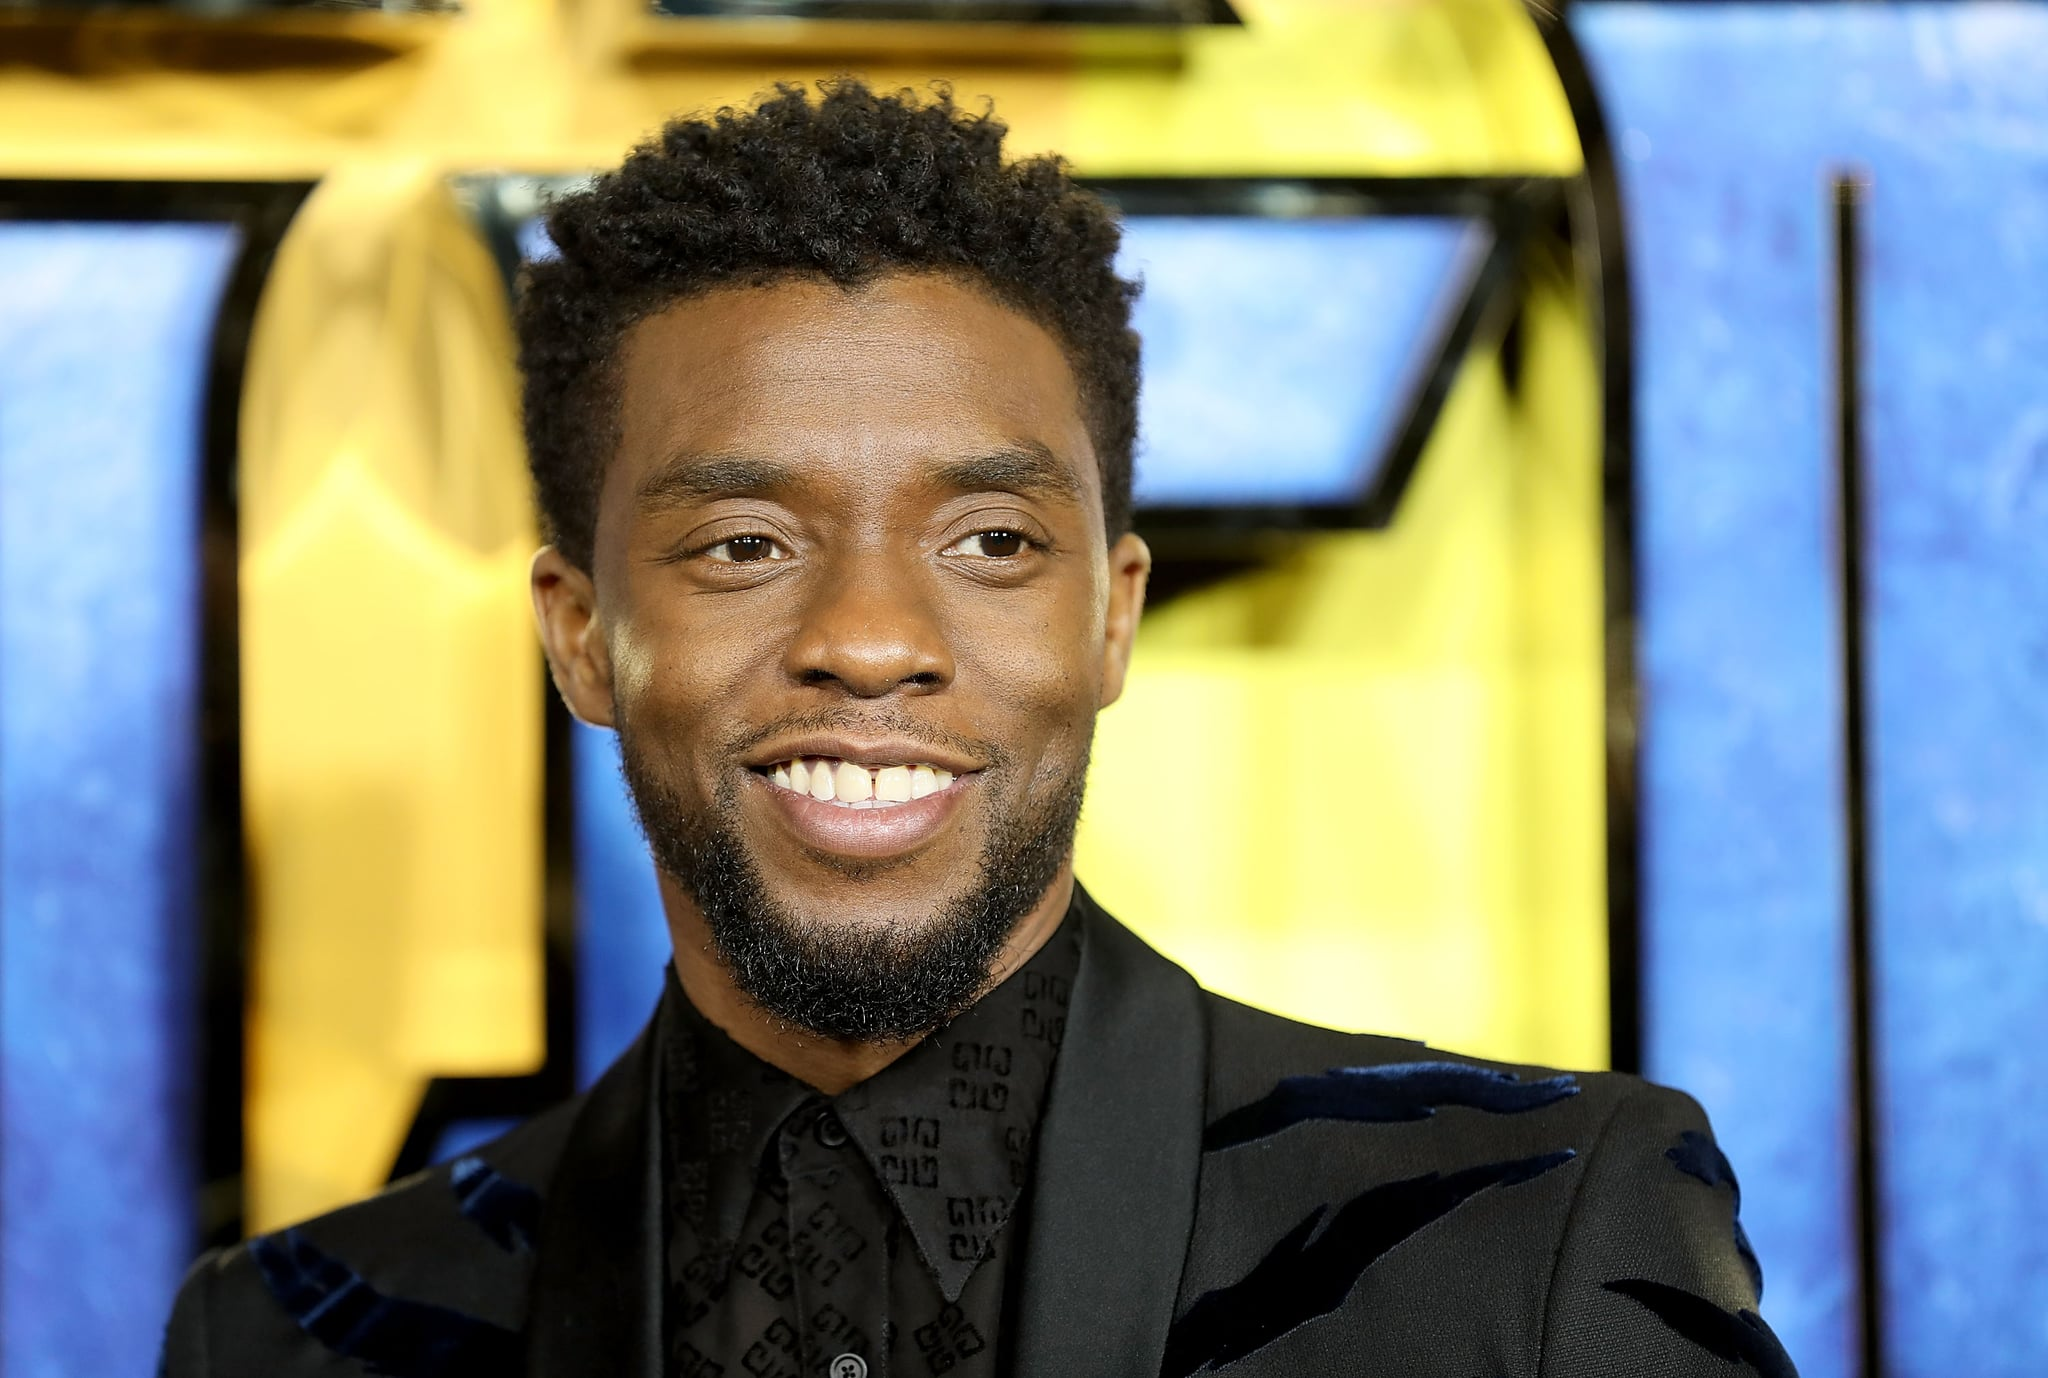 LONDON, ENGLAND - FEBRUARY 08:  Chadwick Boseman attends the European Premiere of 'Black Panther' at Eventim Apollo on February 8, 2018 in London, England.  (Photo by Tim P. Whitby/Tim P. Whitby/Getty Images)